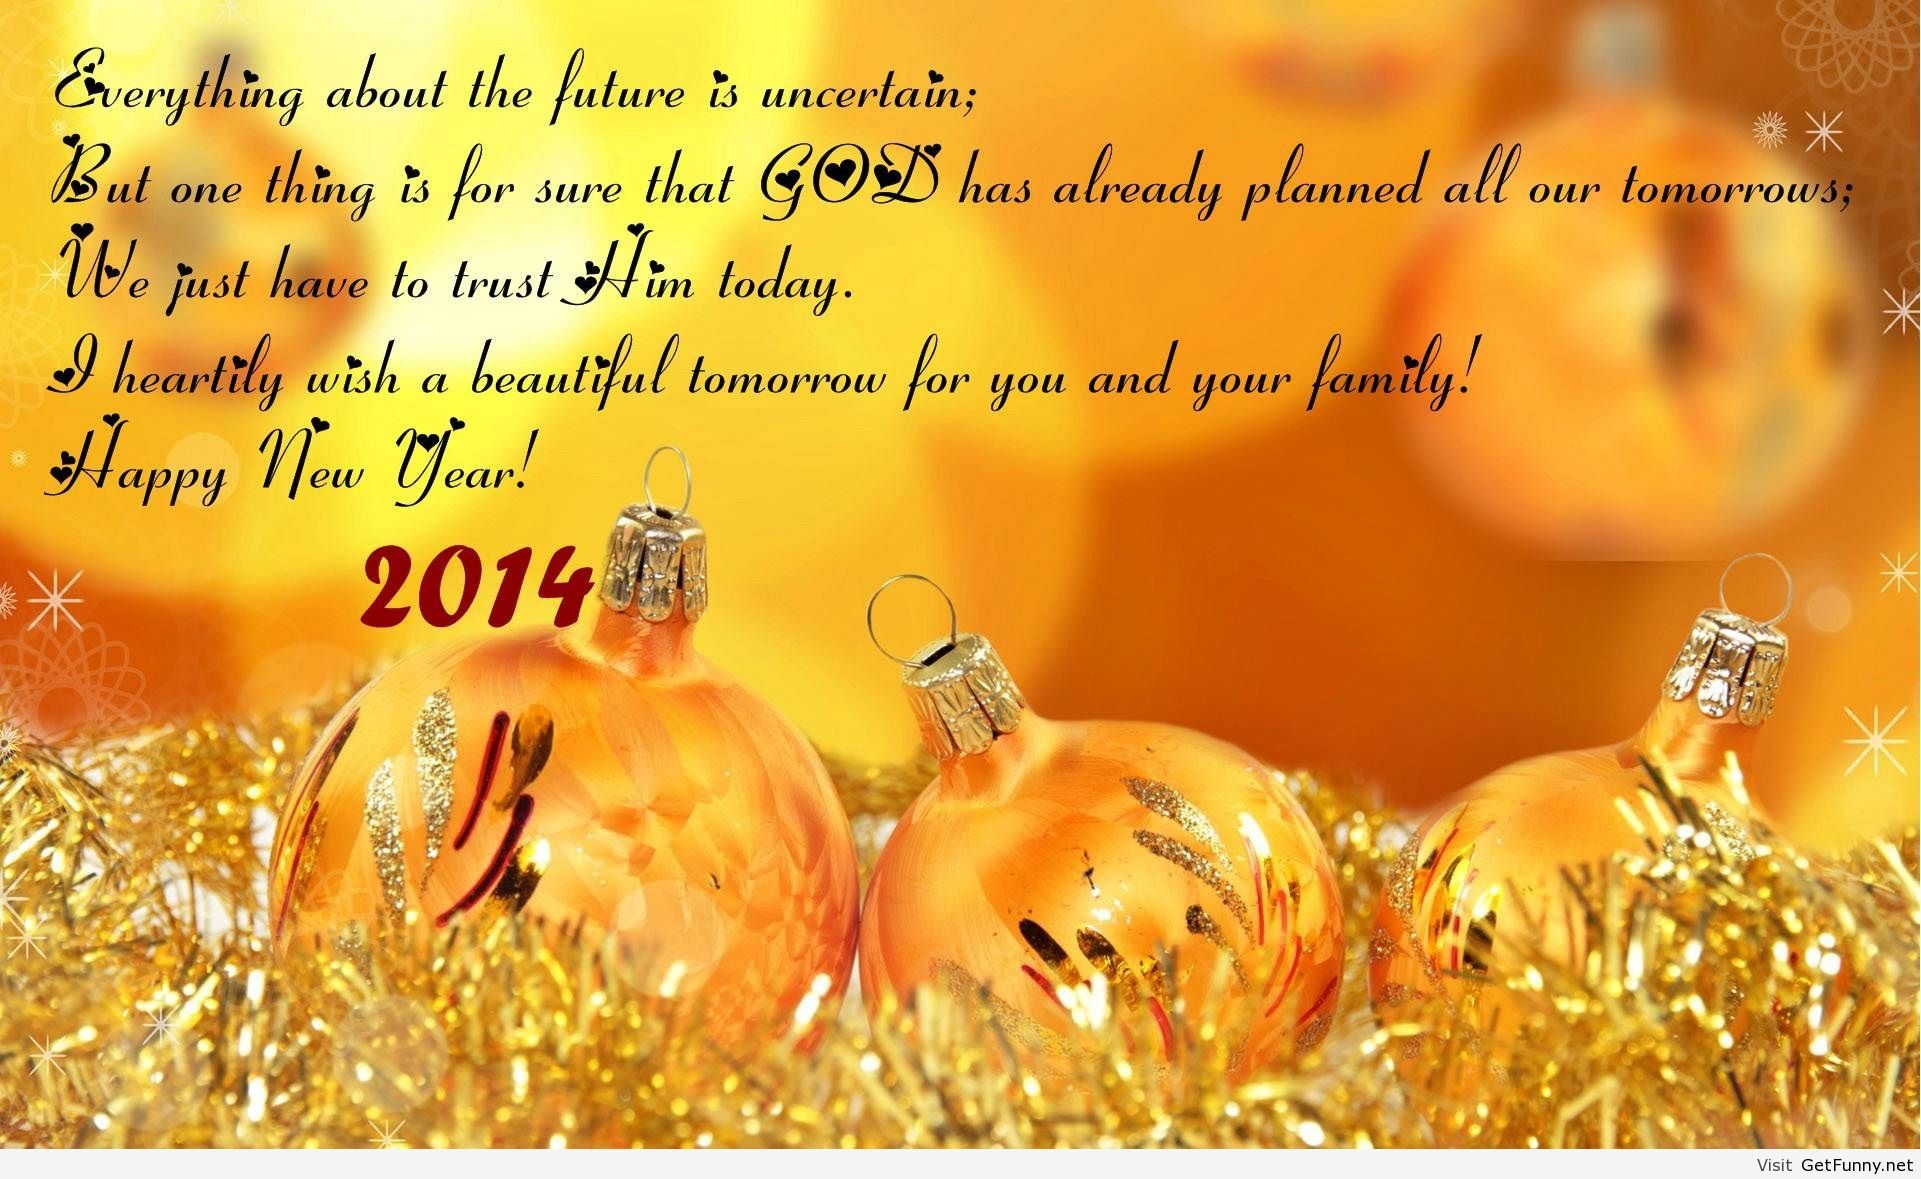 Top 100 most amazing happy new year wishes greetings quotes - Happy New Year 2014 Quotes